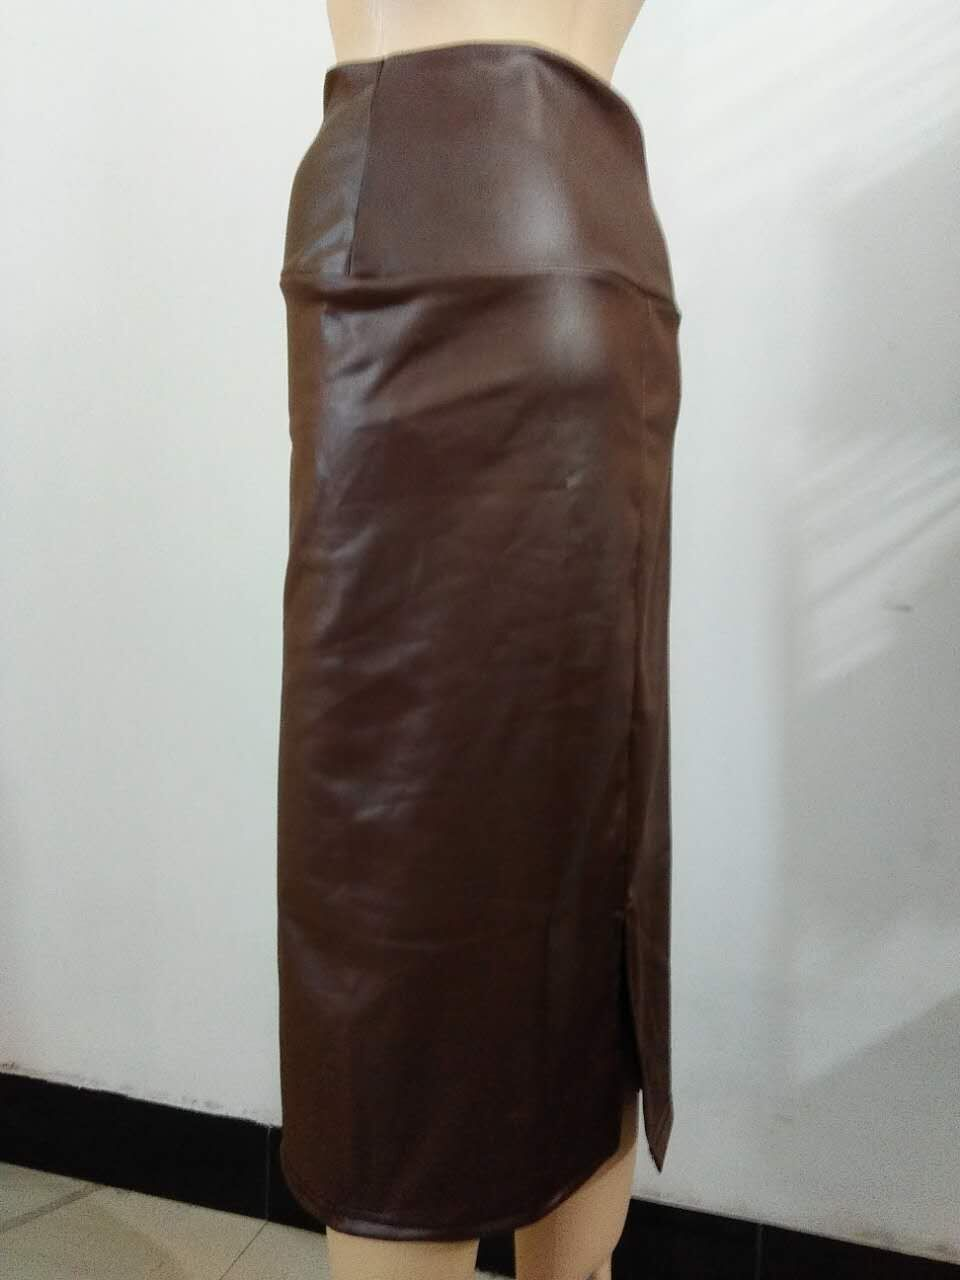 2435d7247e9 Bohocotol 2018 summer women plus size high waist faux leather pencil skirt  black leather skirt S M L XXXL free shipping-in Skirts from Women s  Clothing on ...